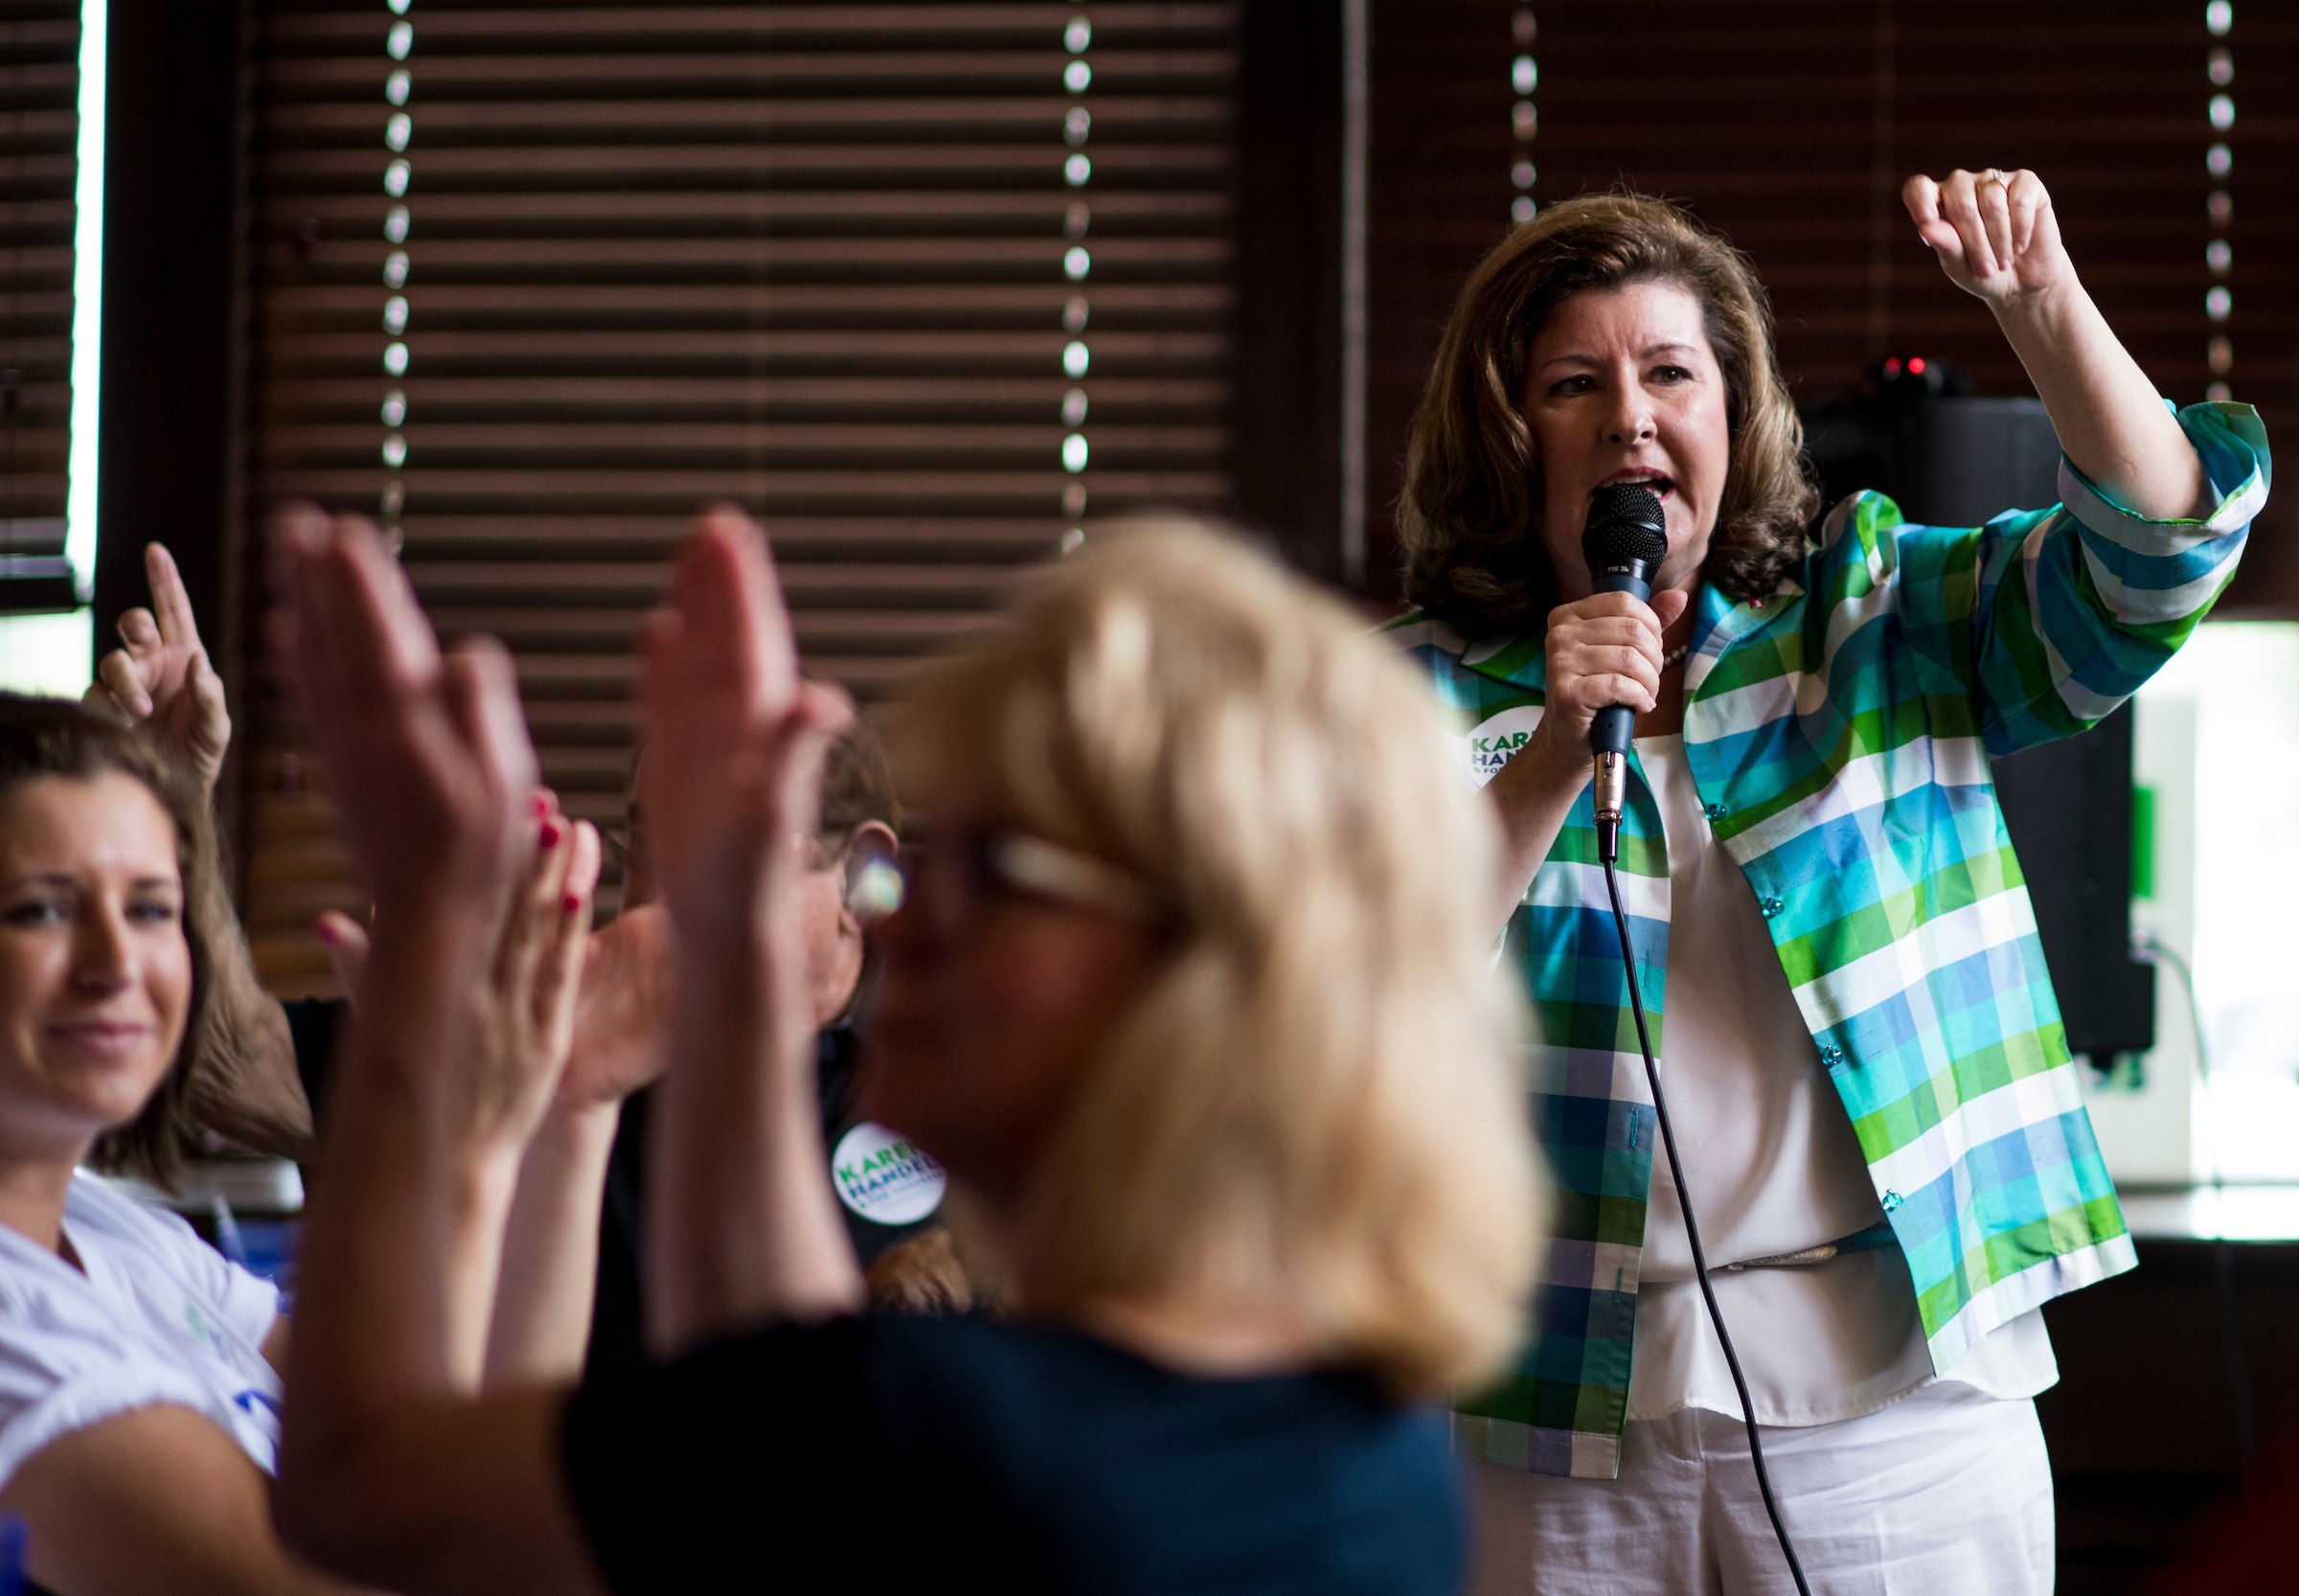 UNITED STATES - JUNE 19: Republican candidate for Georgia's 6th Congressional district Karen Handel speaks to supporters at the Cherokee Cattle Ranch restaurant in Marietta, Ga., on the final day of campaigning on Monday, June 19, 2017. Handel is facing off against Democrat Jon Ossoff in the special election to fill the seat vacated by current HHS Secretary Tom Price will be held on Tuesday. (Photo By Bill Clark/CQ Roll Call)